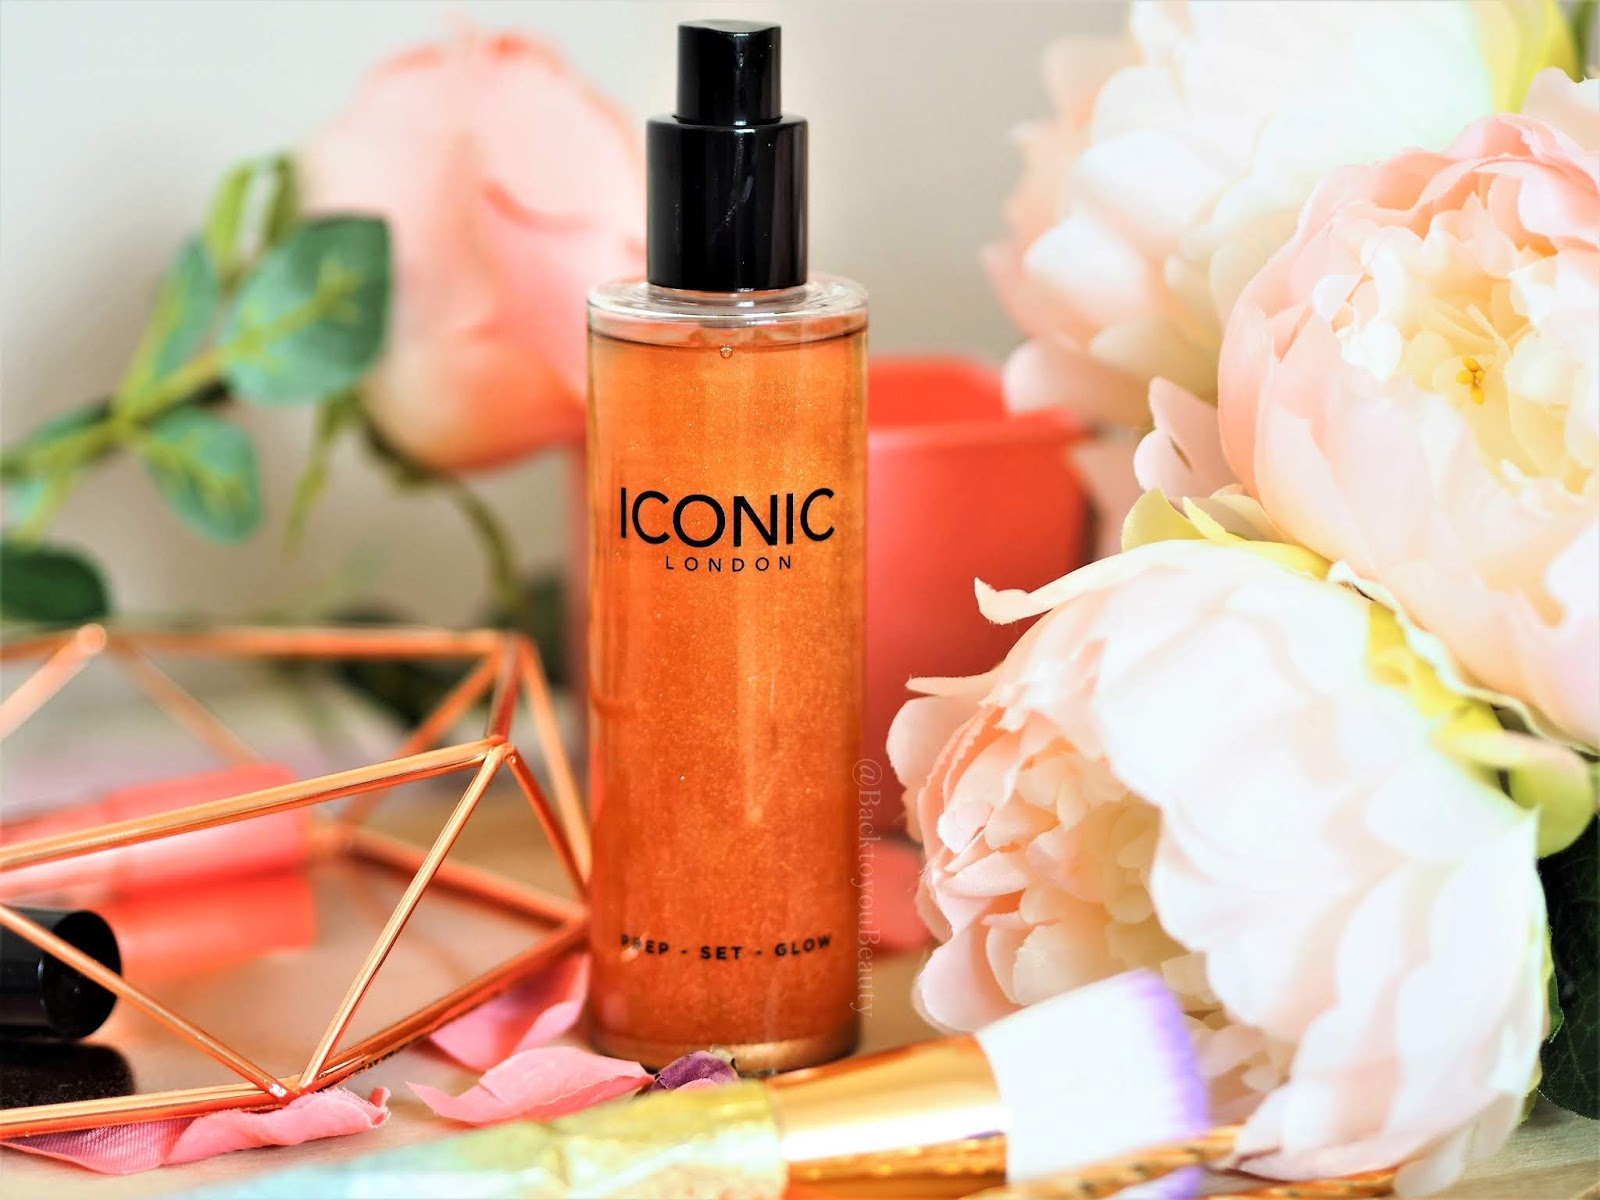 Iconic London prep set and glow spray